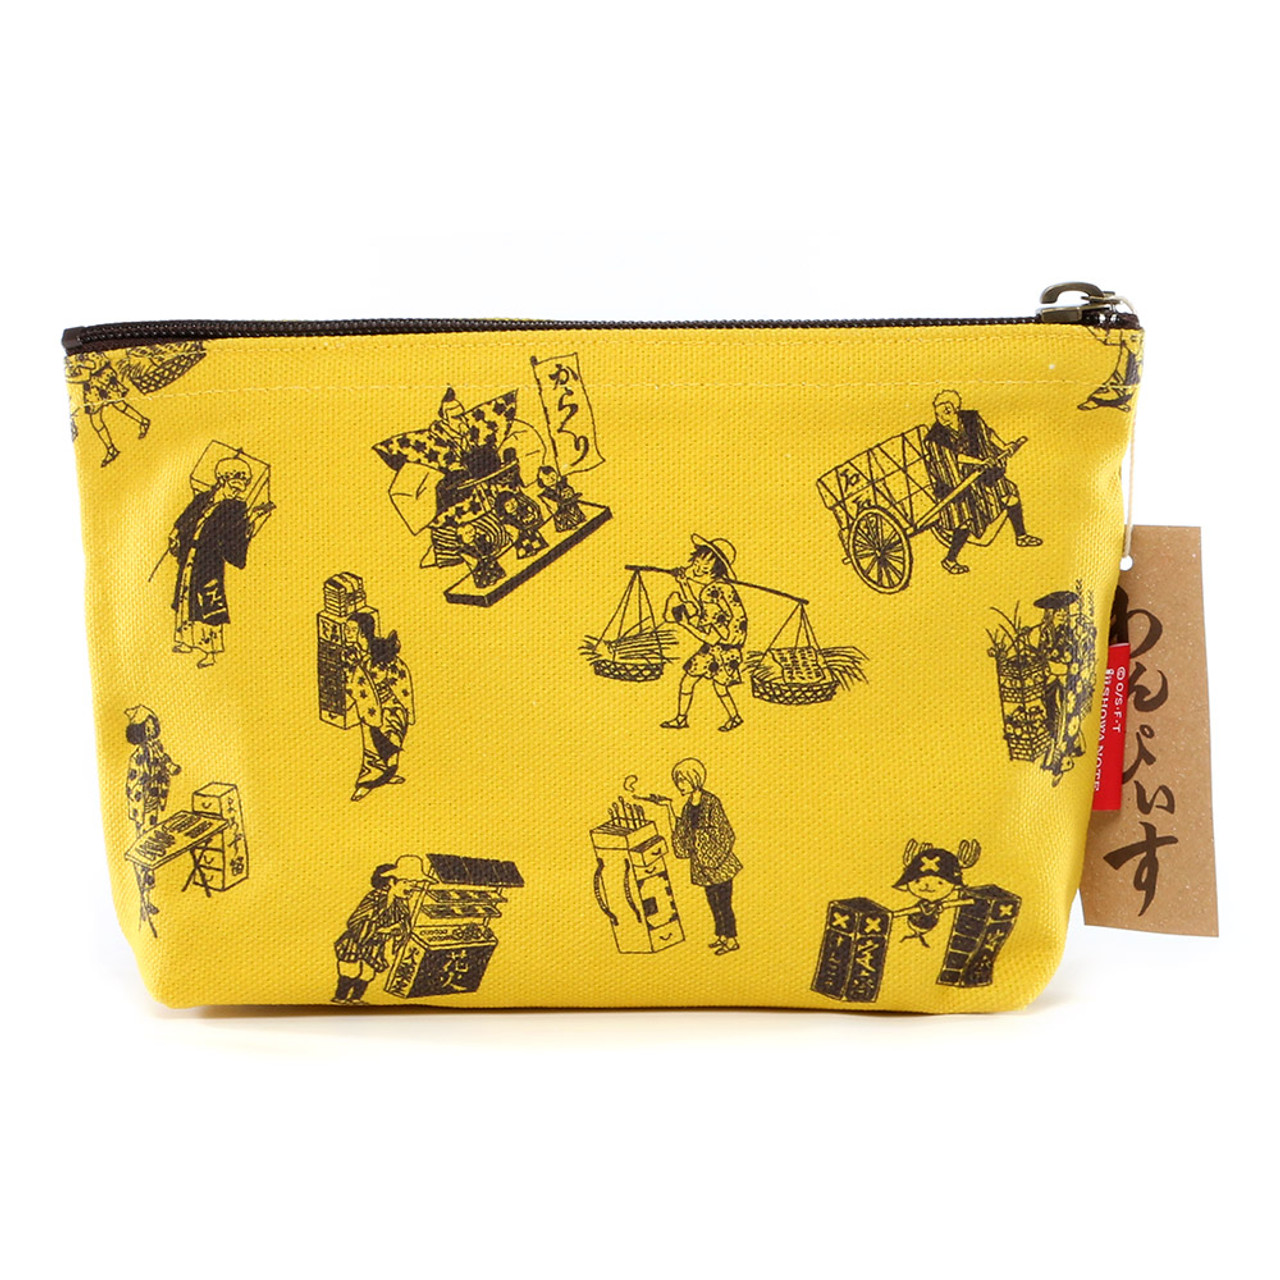 One Piece Yellow Cosmetic Pouch ( Cover View )